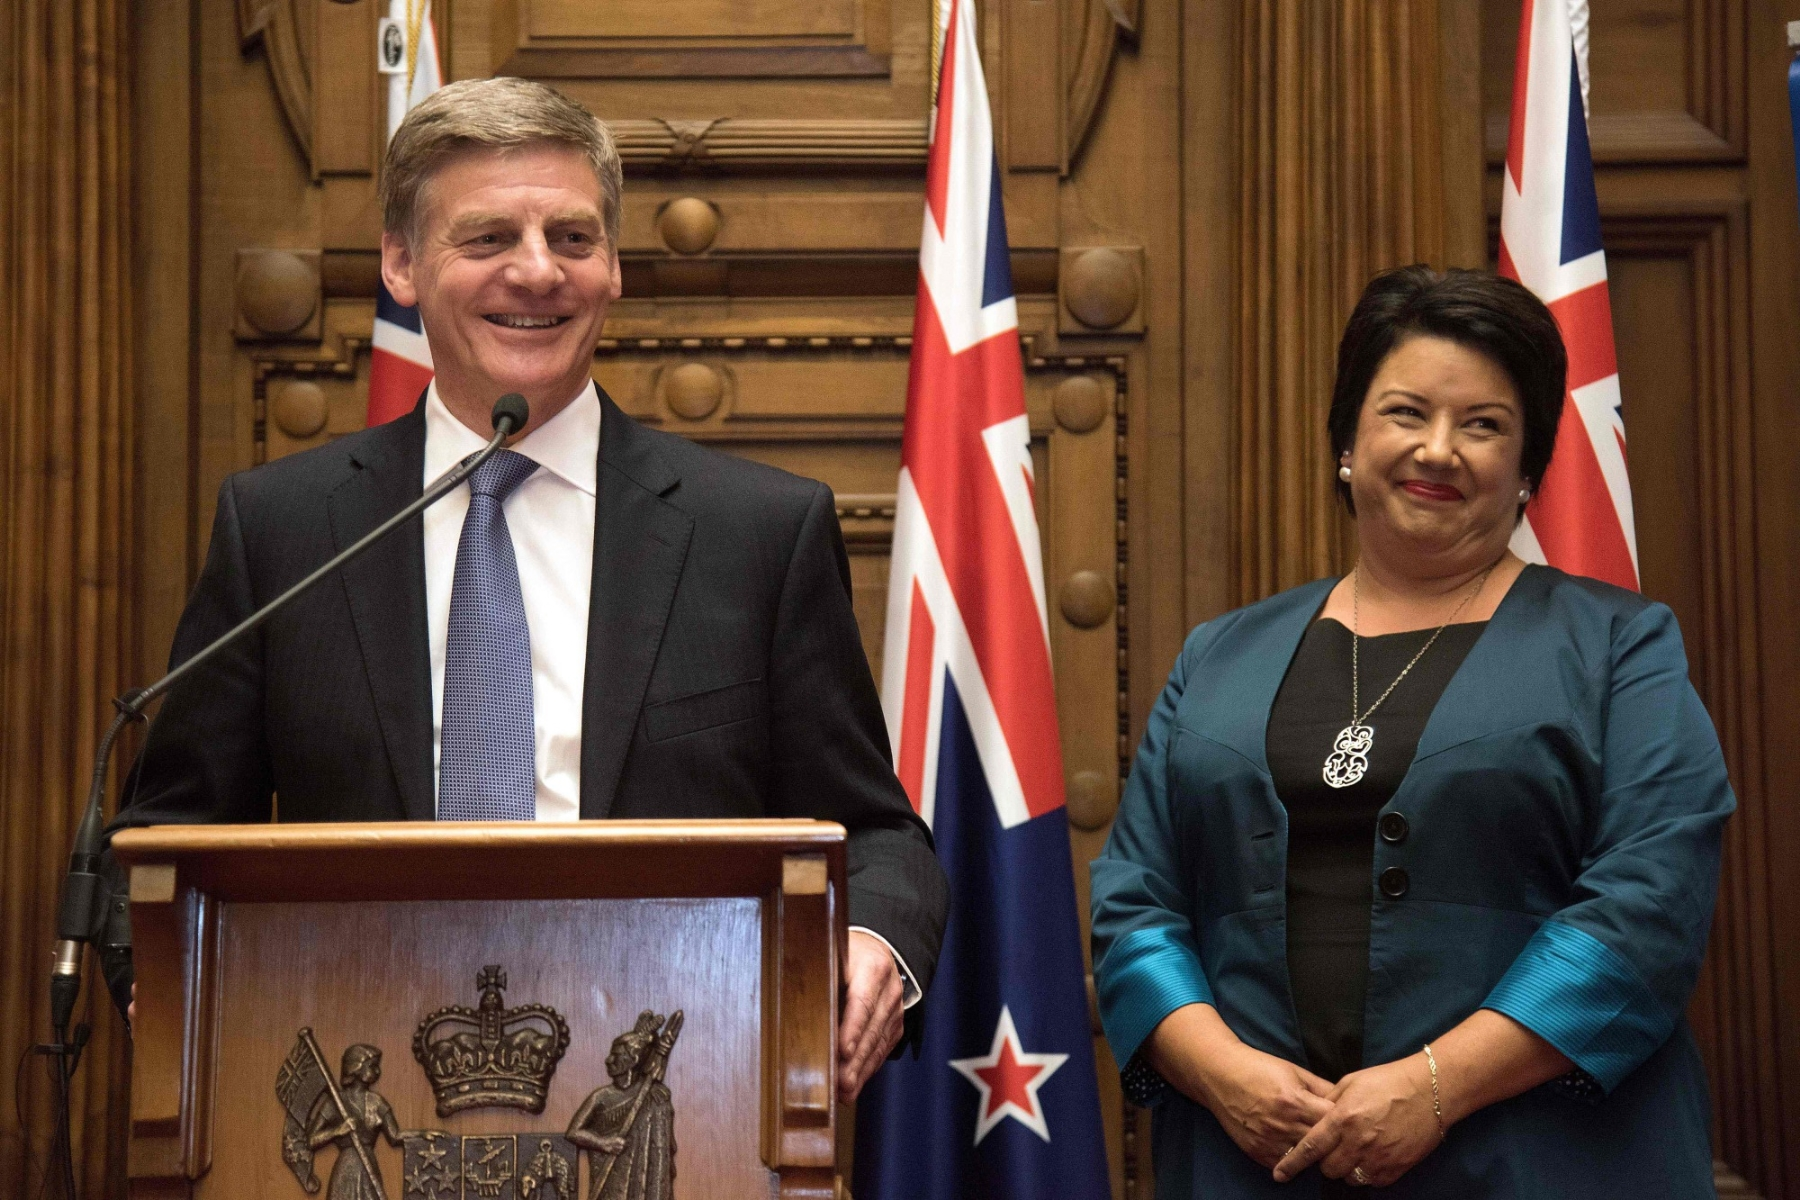 Bill English, once a farmer, will be New Zealand Prime Minister replacing John Key